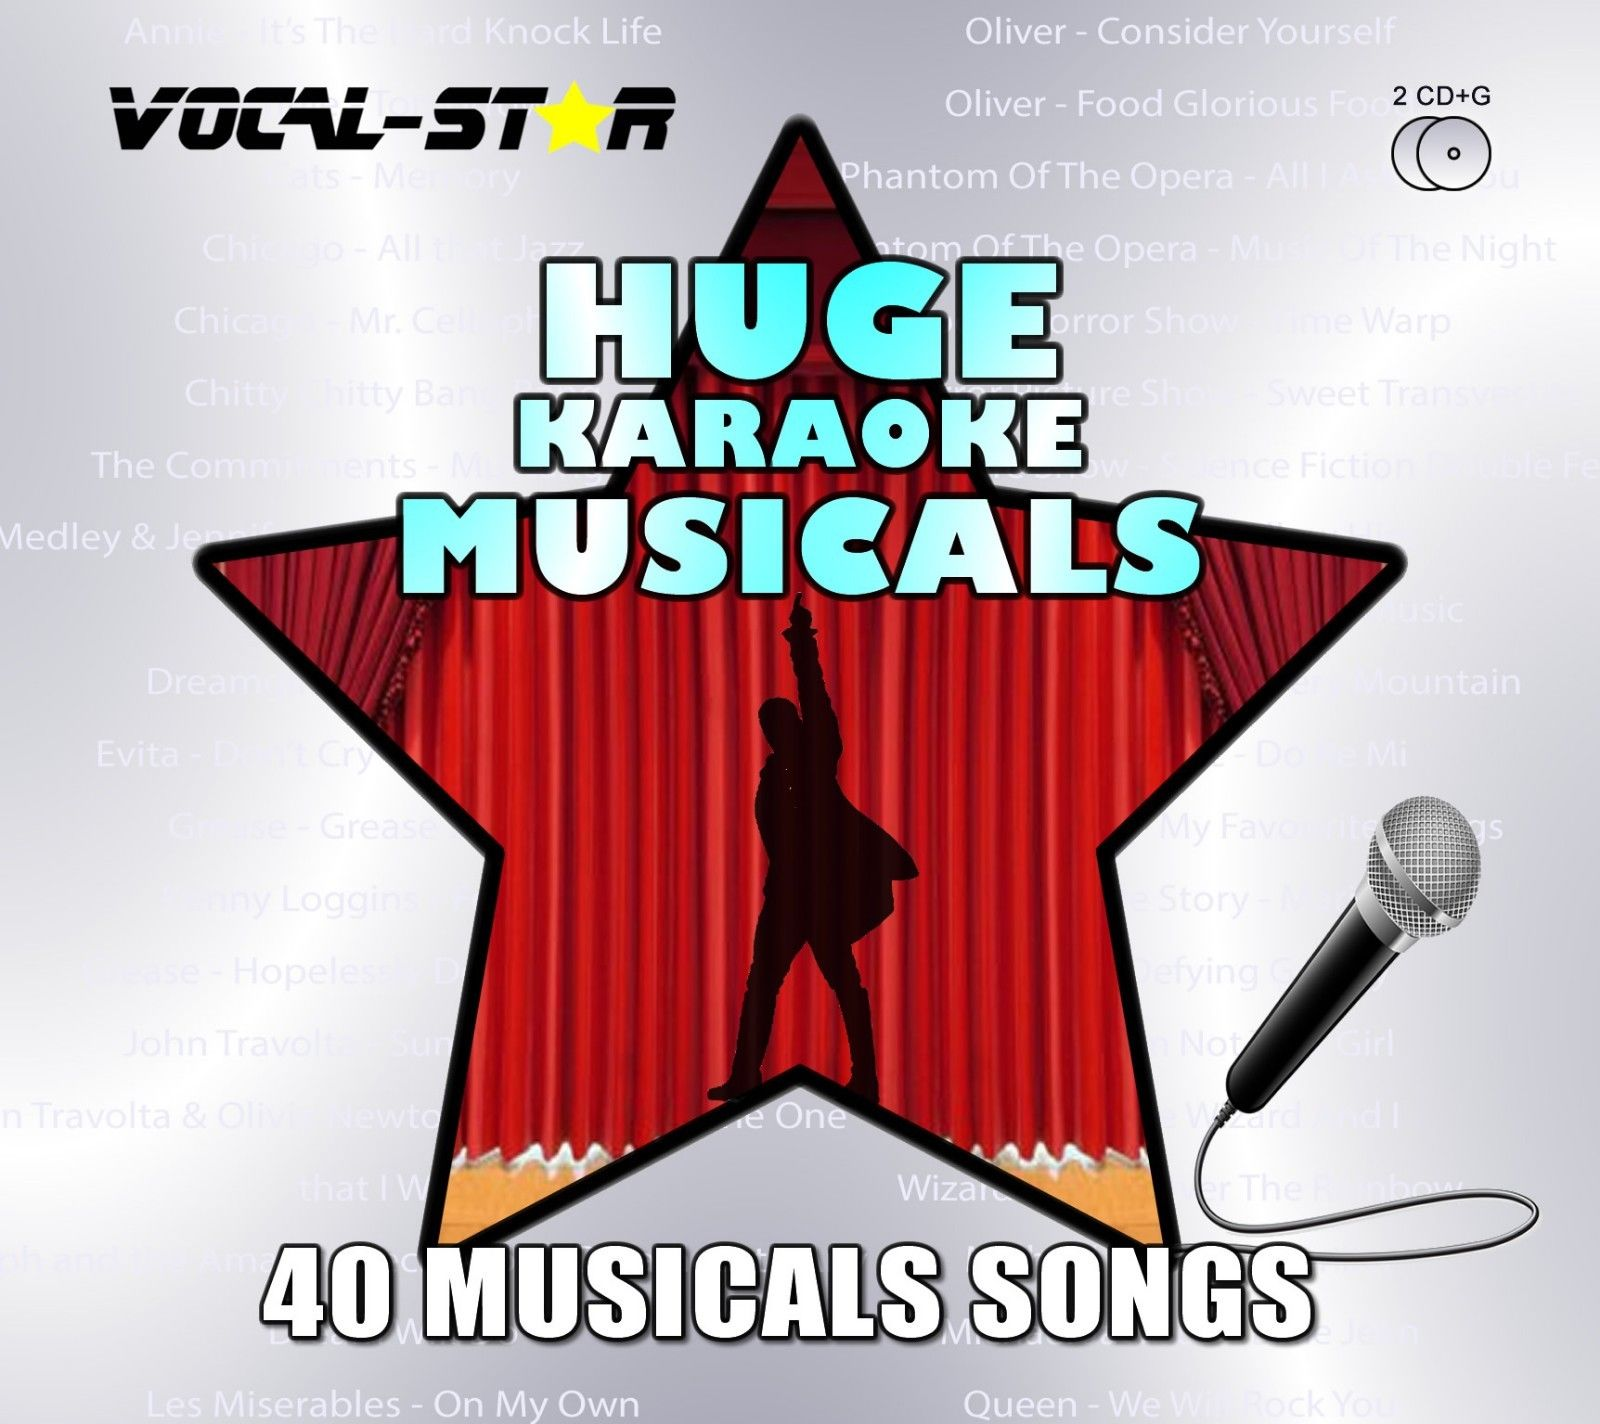 Vocal-Star Huge Karaoke Hits of Musicals - 40 Songs - 2 CDG Disc Set